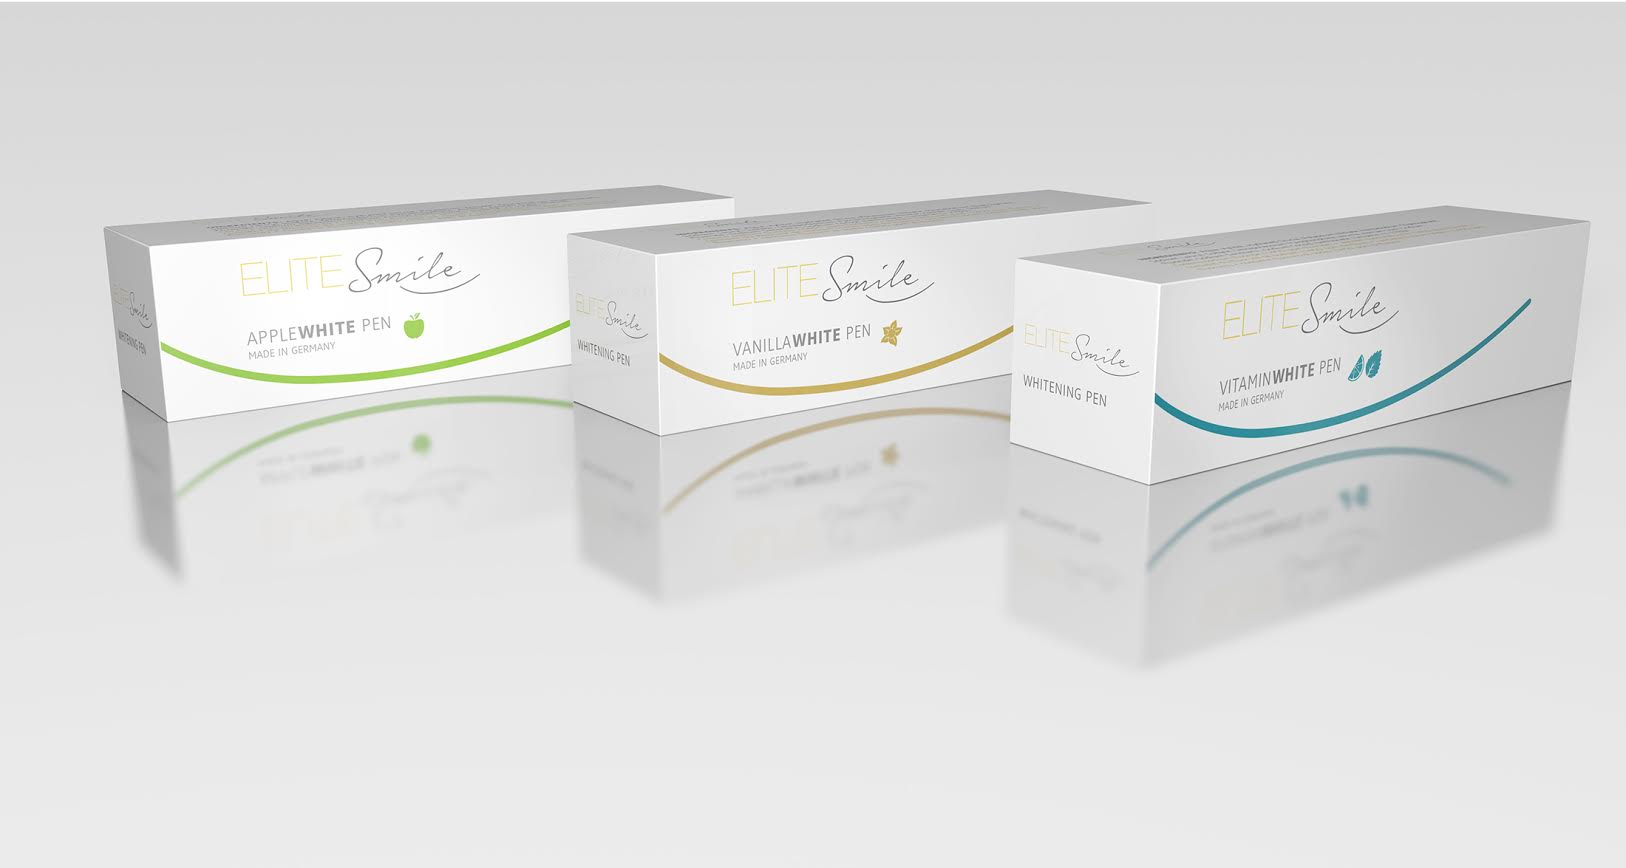 elitesmile-Packaging-final